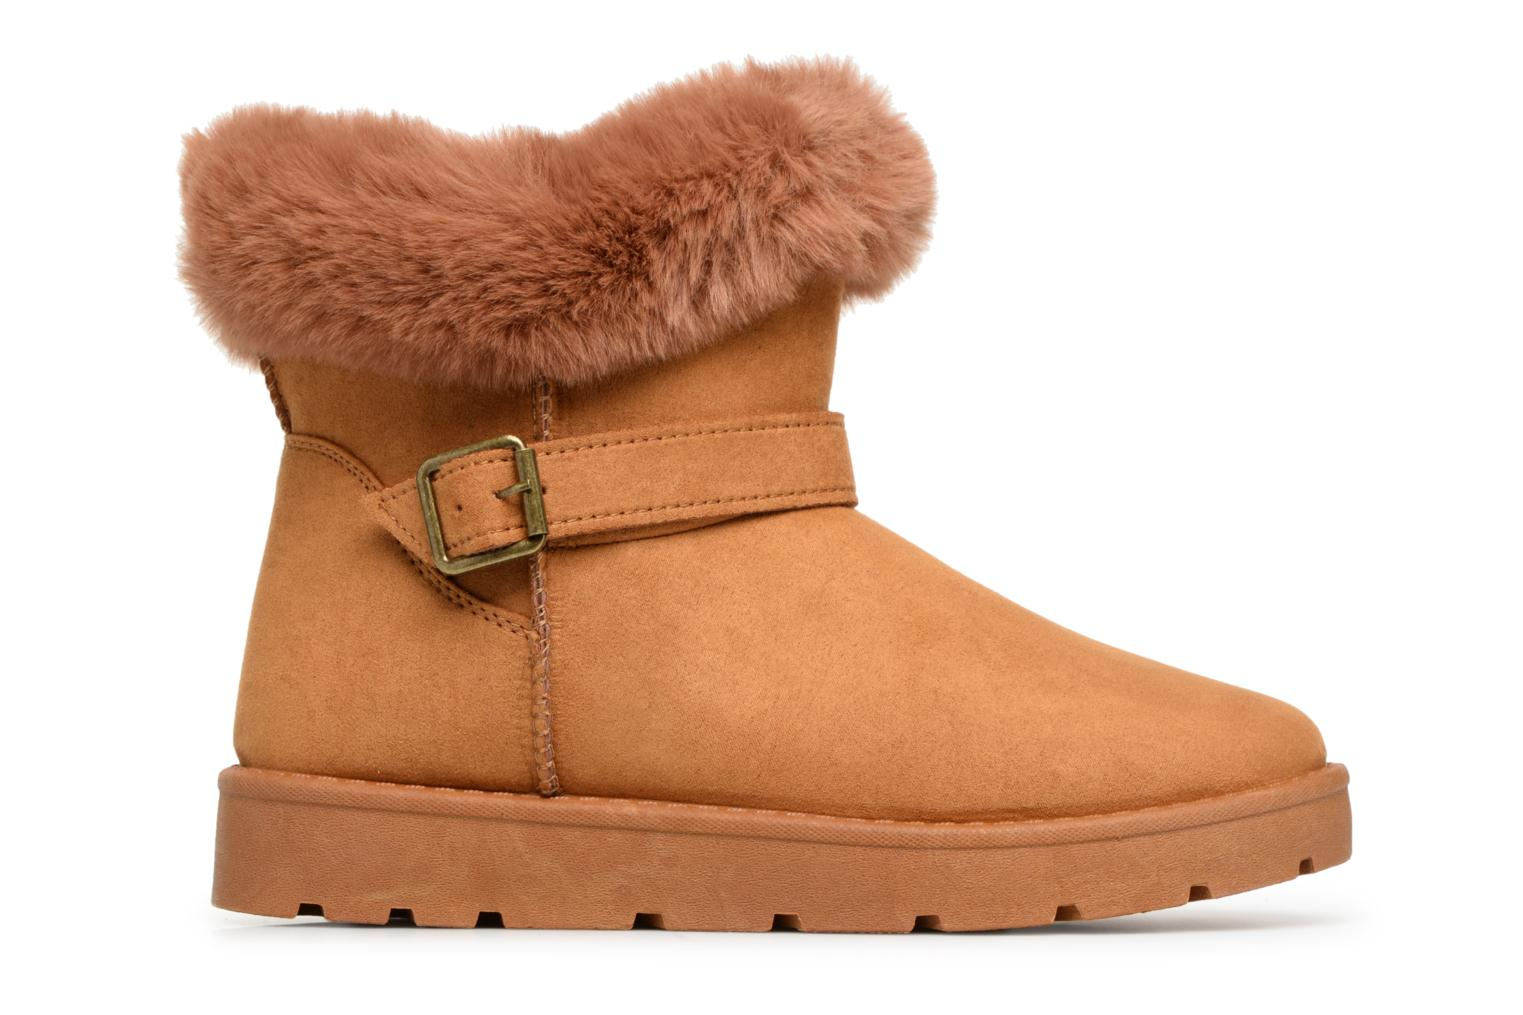 I Theochaud Theochaud I Shoes Love Camel Shoes Love Camel Ow6x0q50nH